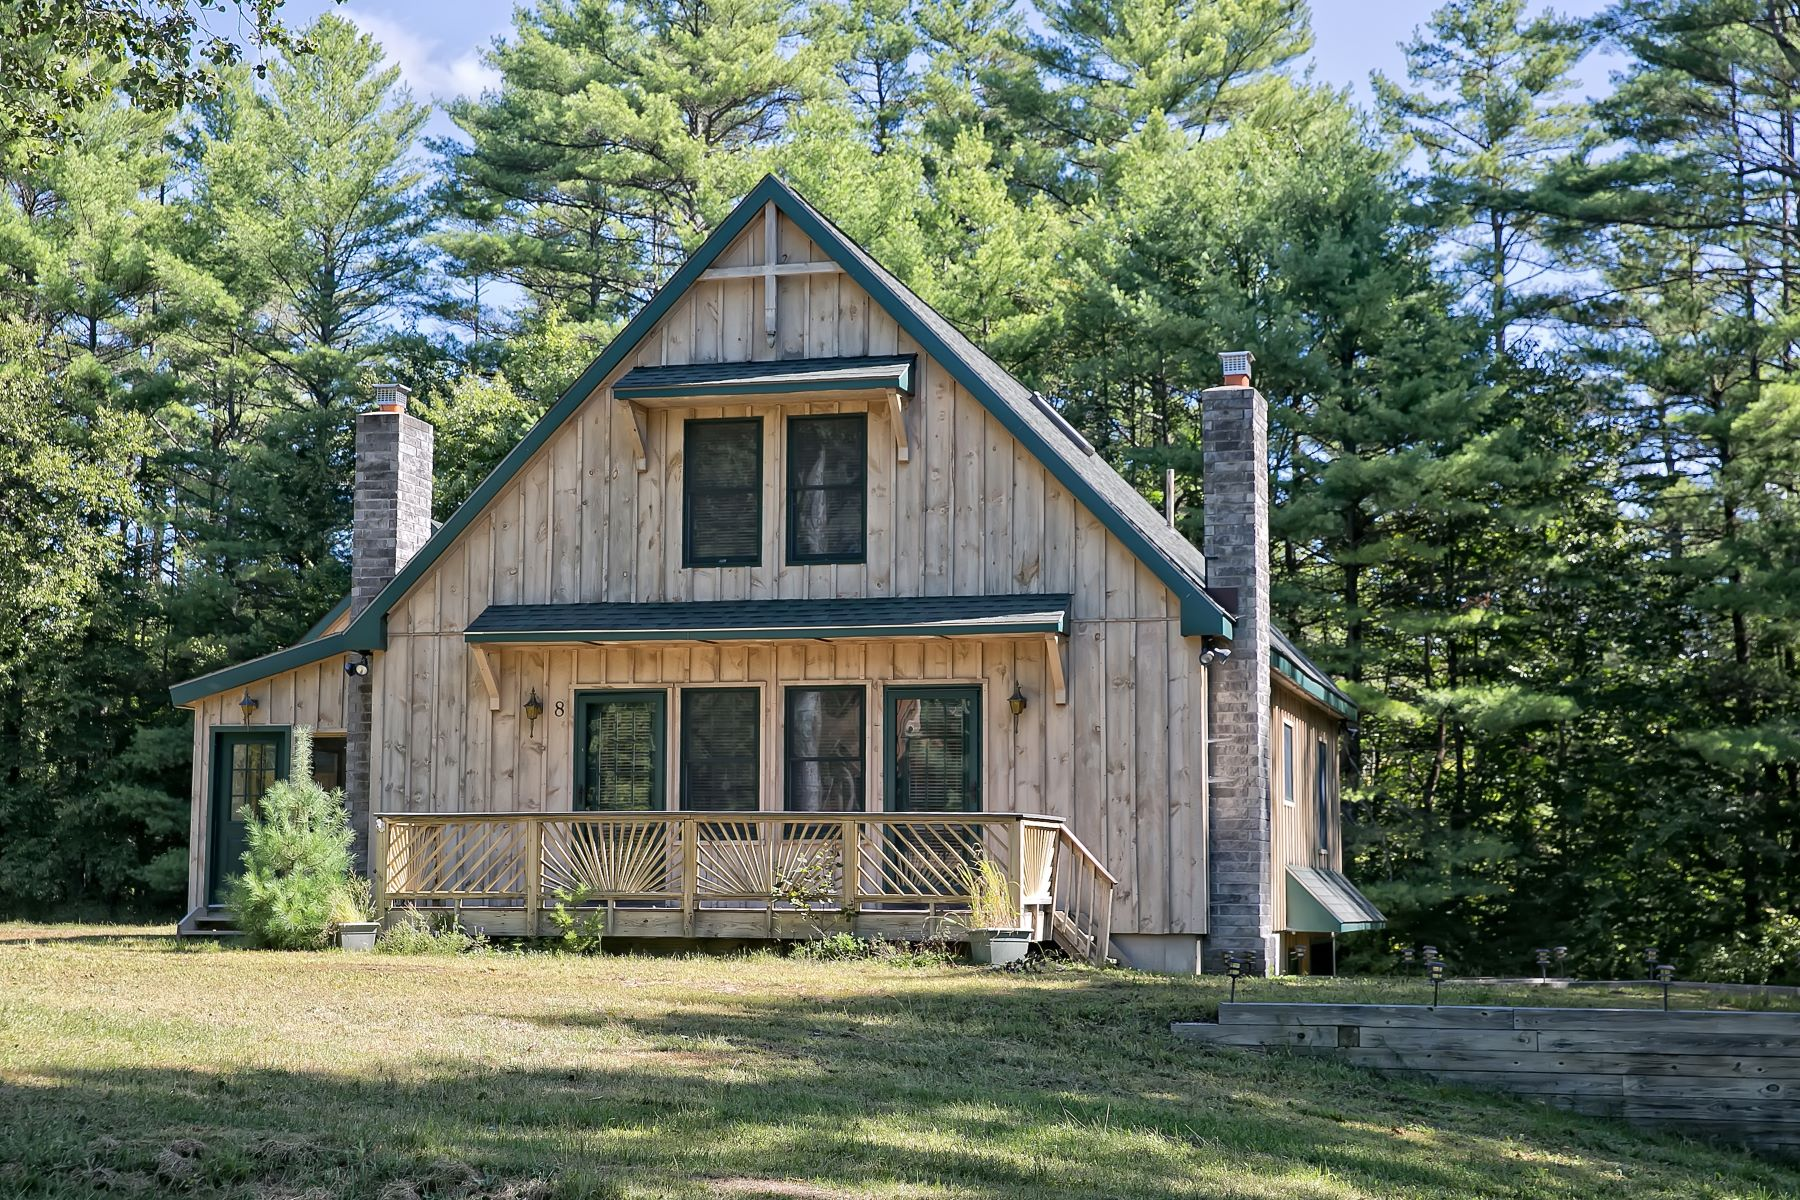 Single Family Homes for Active at Custom Adirondack Chalet 8 Locarno St Lake Luzerne, New York 12846 United States